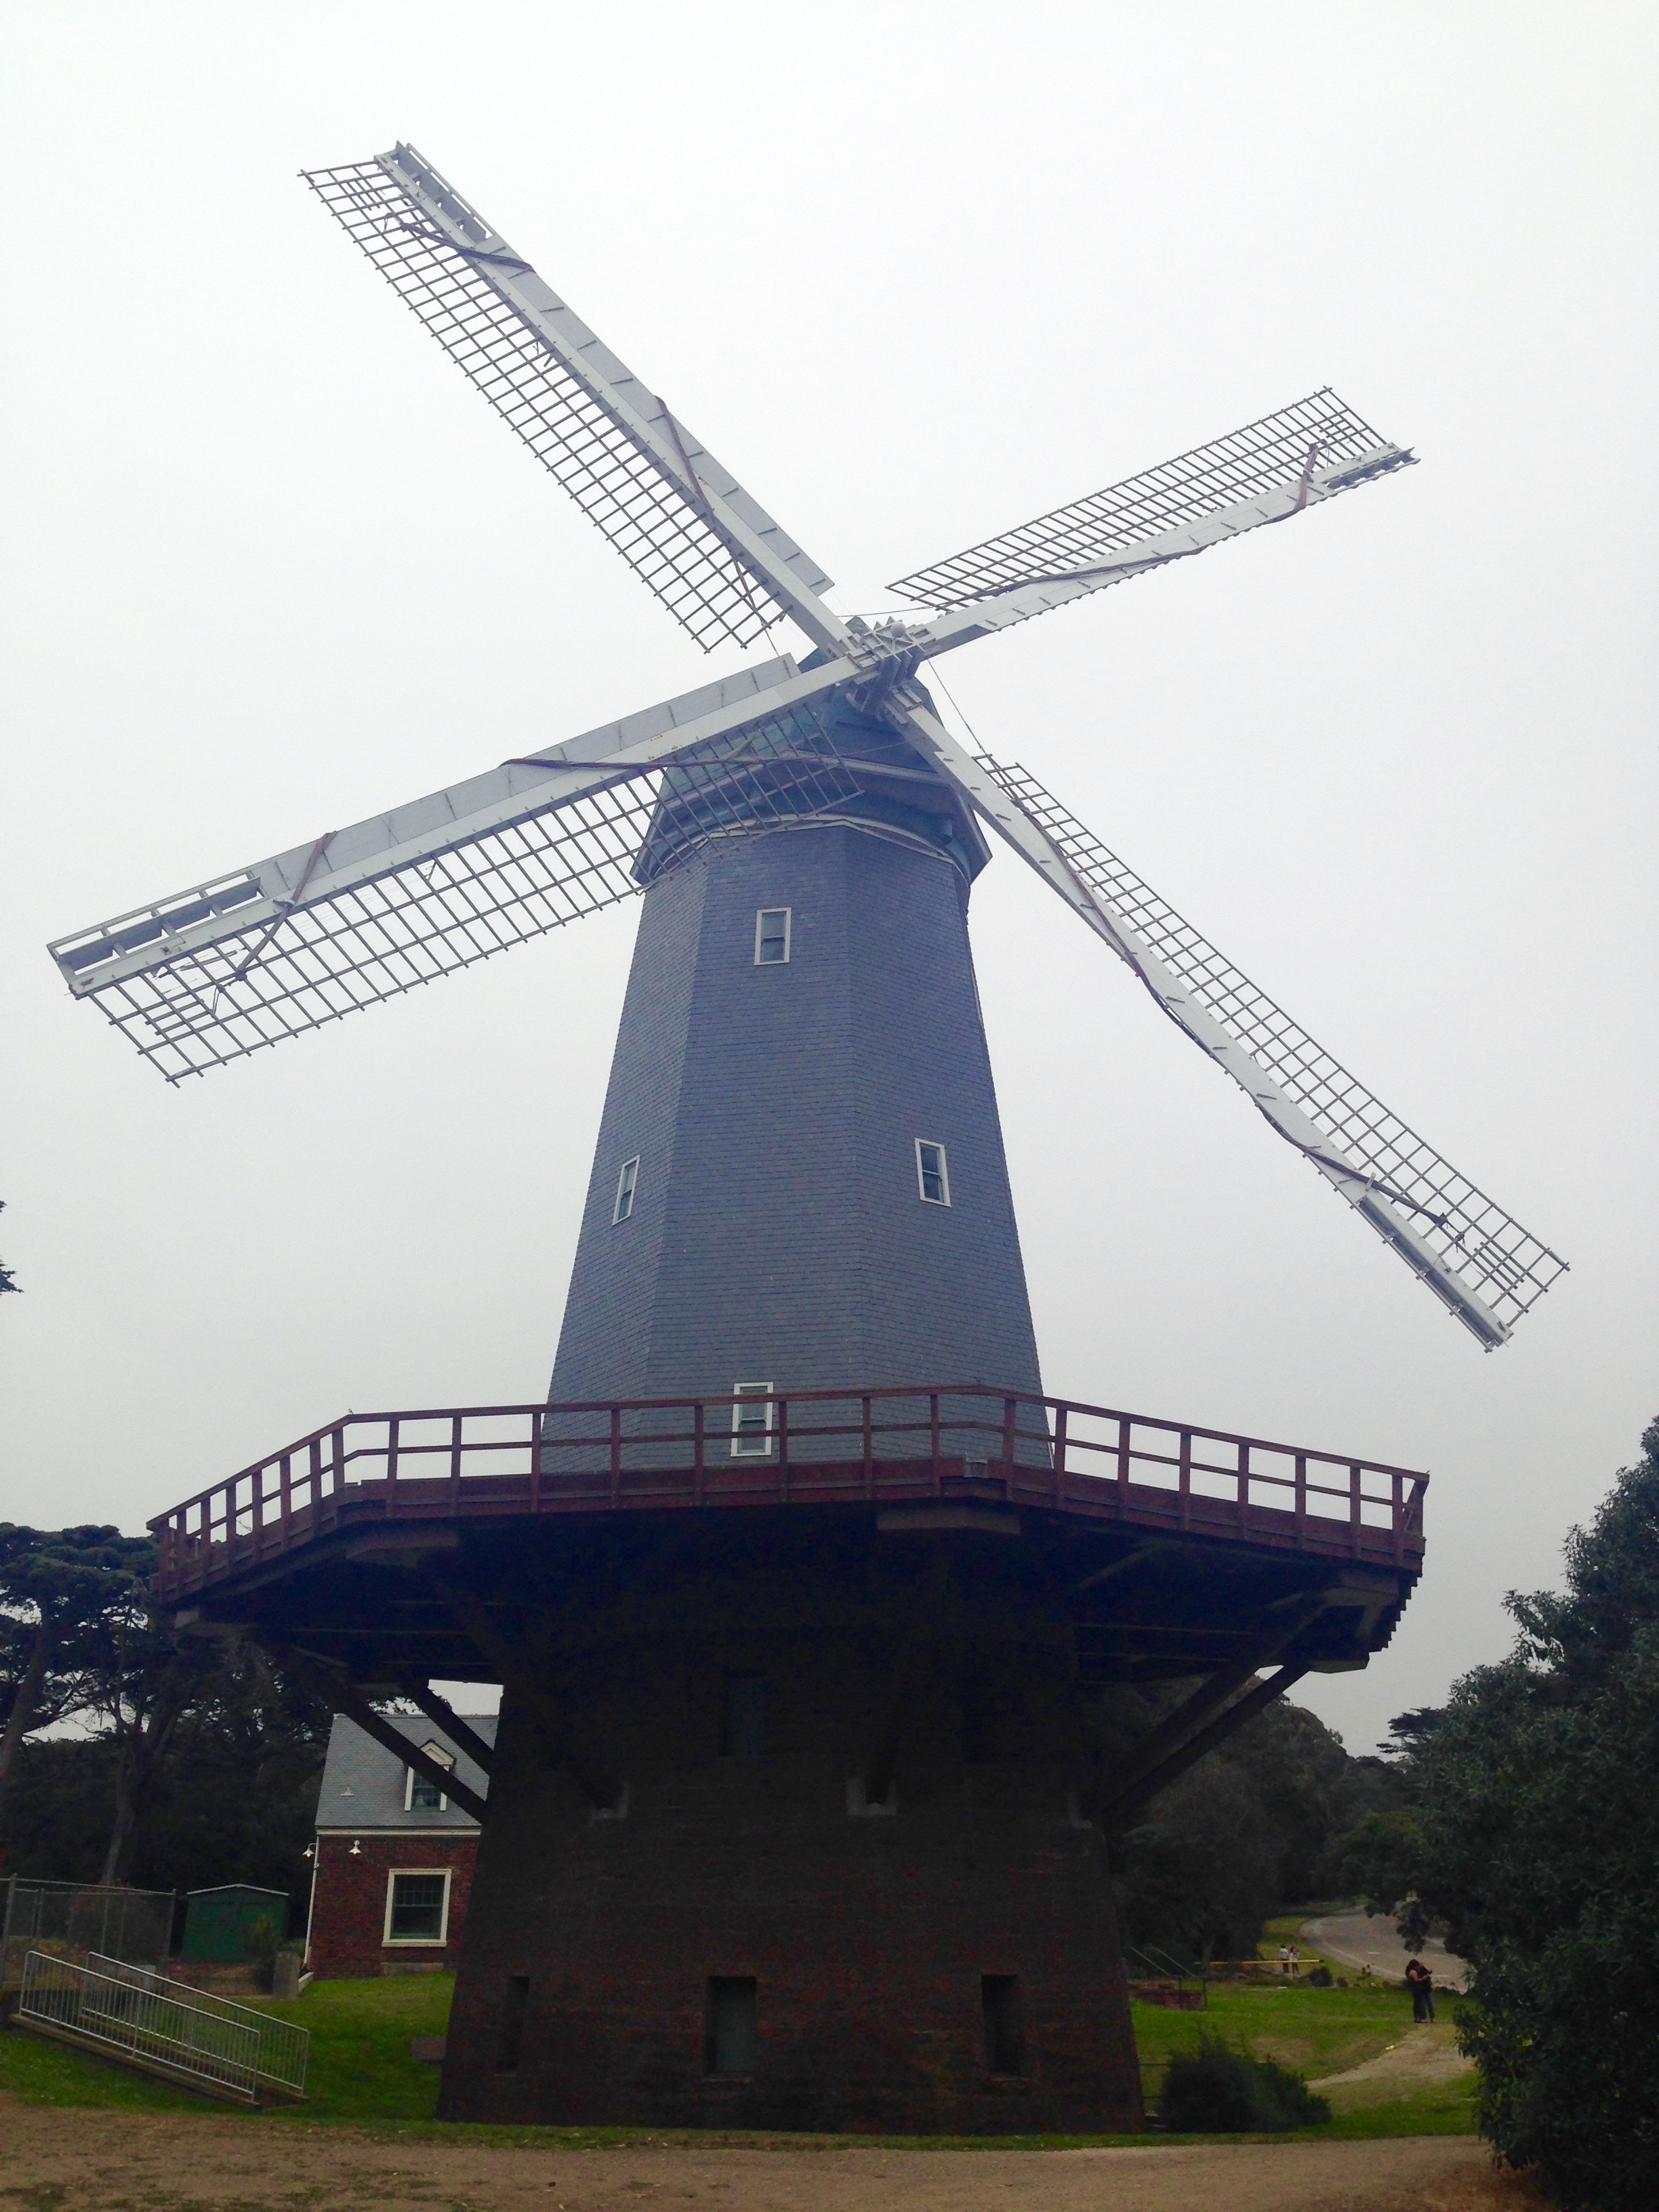 The Murphy Windmill would attempt to outshine its sister attraction (the next spot on our list) by becoming the largest windmill in the world outside of Holland when it was completed in 1908. Its sails reach out 114 feet. It was used to pump fresh well water into the park. After going into a state of disrepair, it's been brought back to its former glory thanks to windmill experts based in the Netherlands, of course.